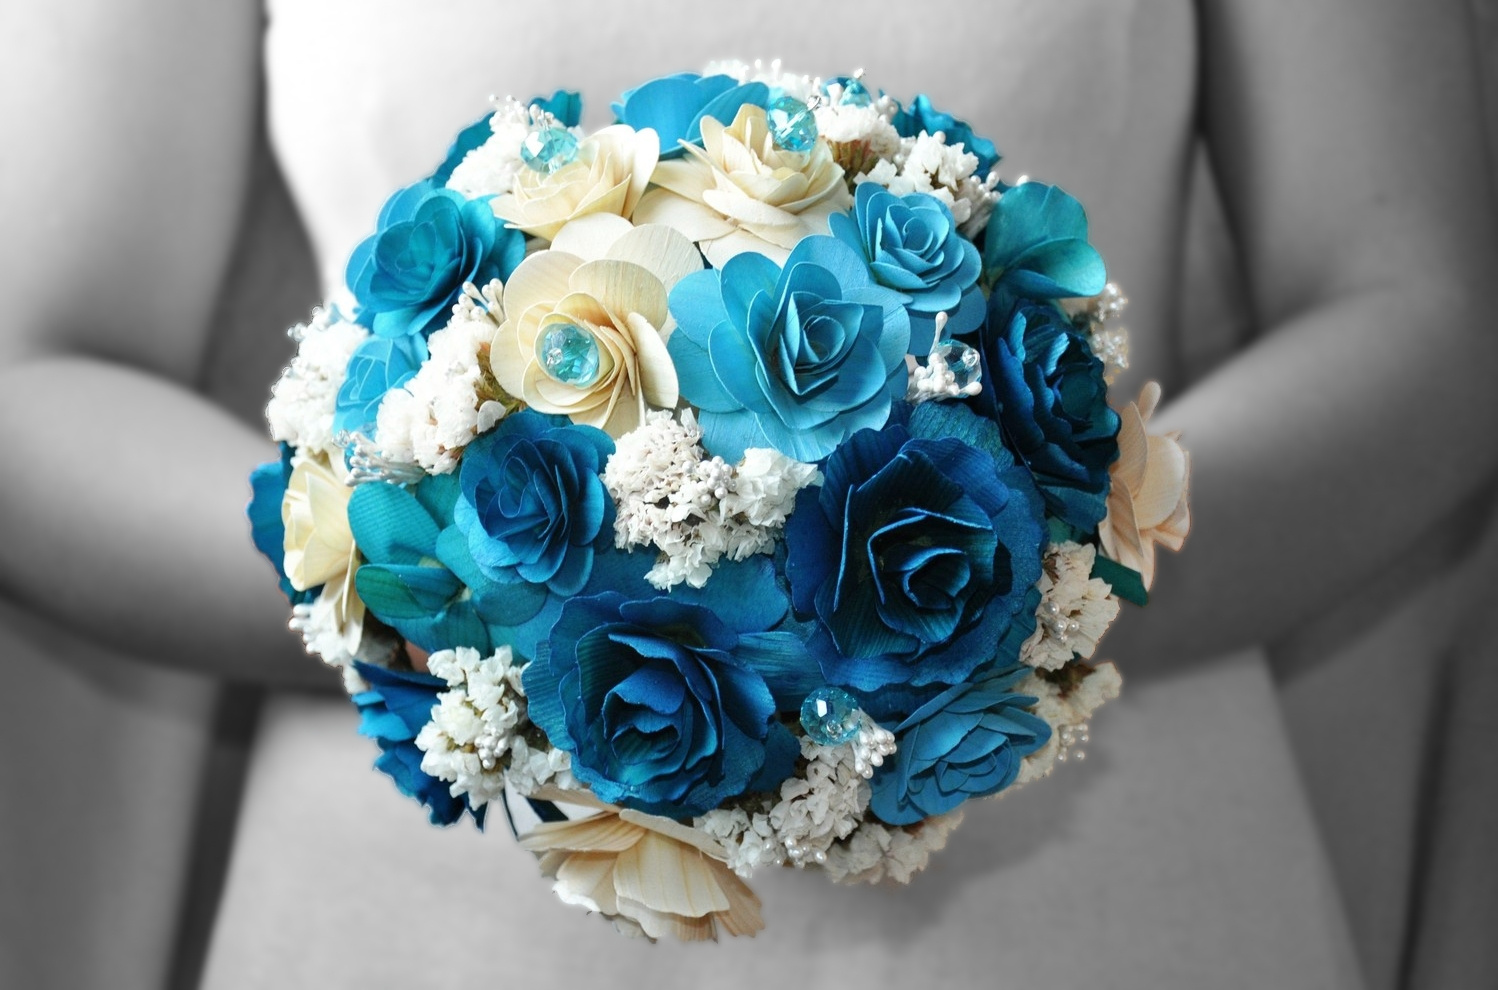 Blue Wedding Bouquets Made Of Wood, Paper, Corn Husk And